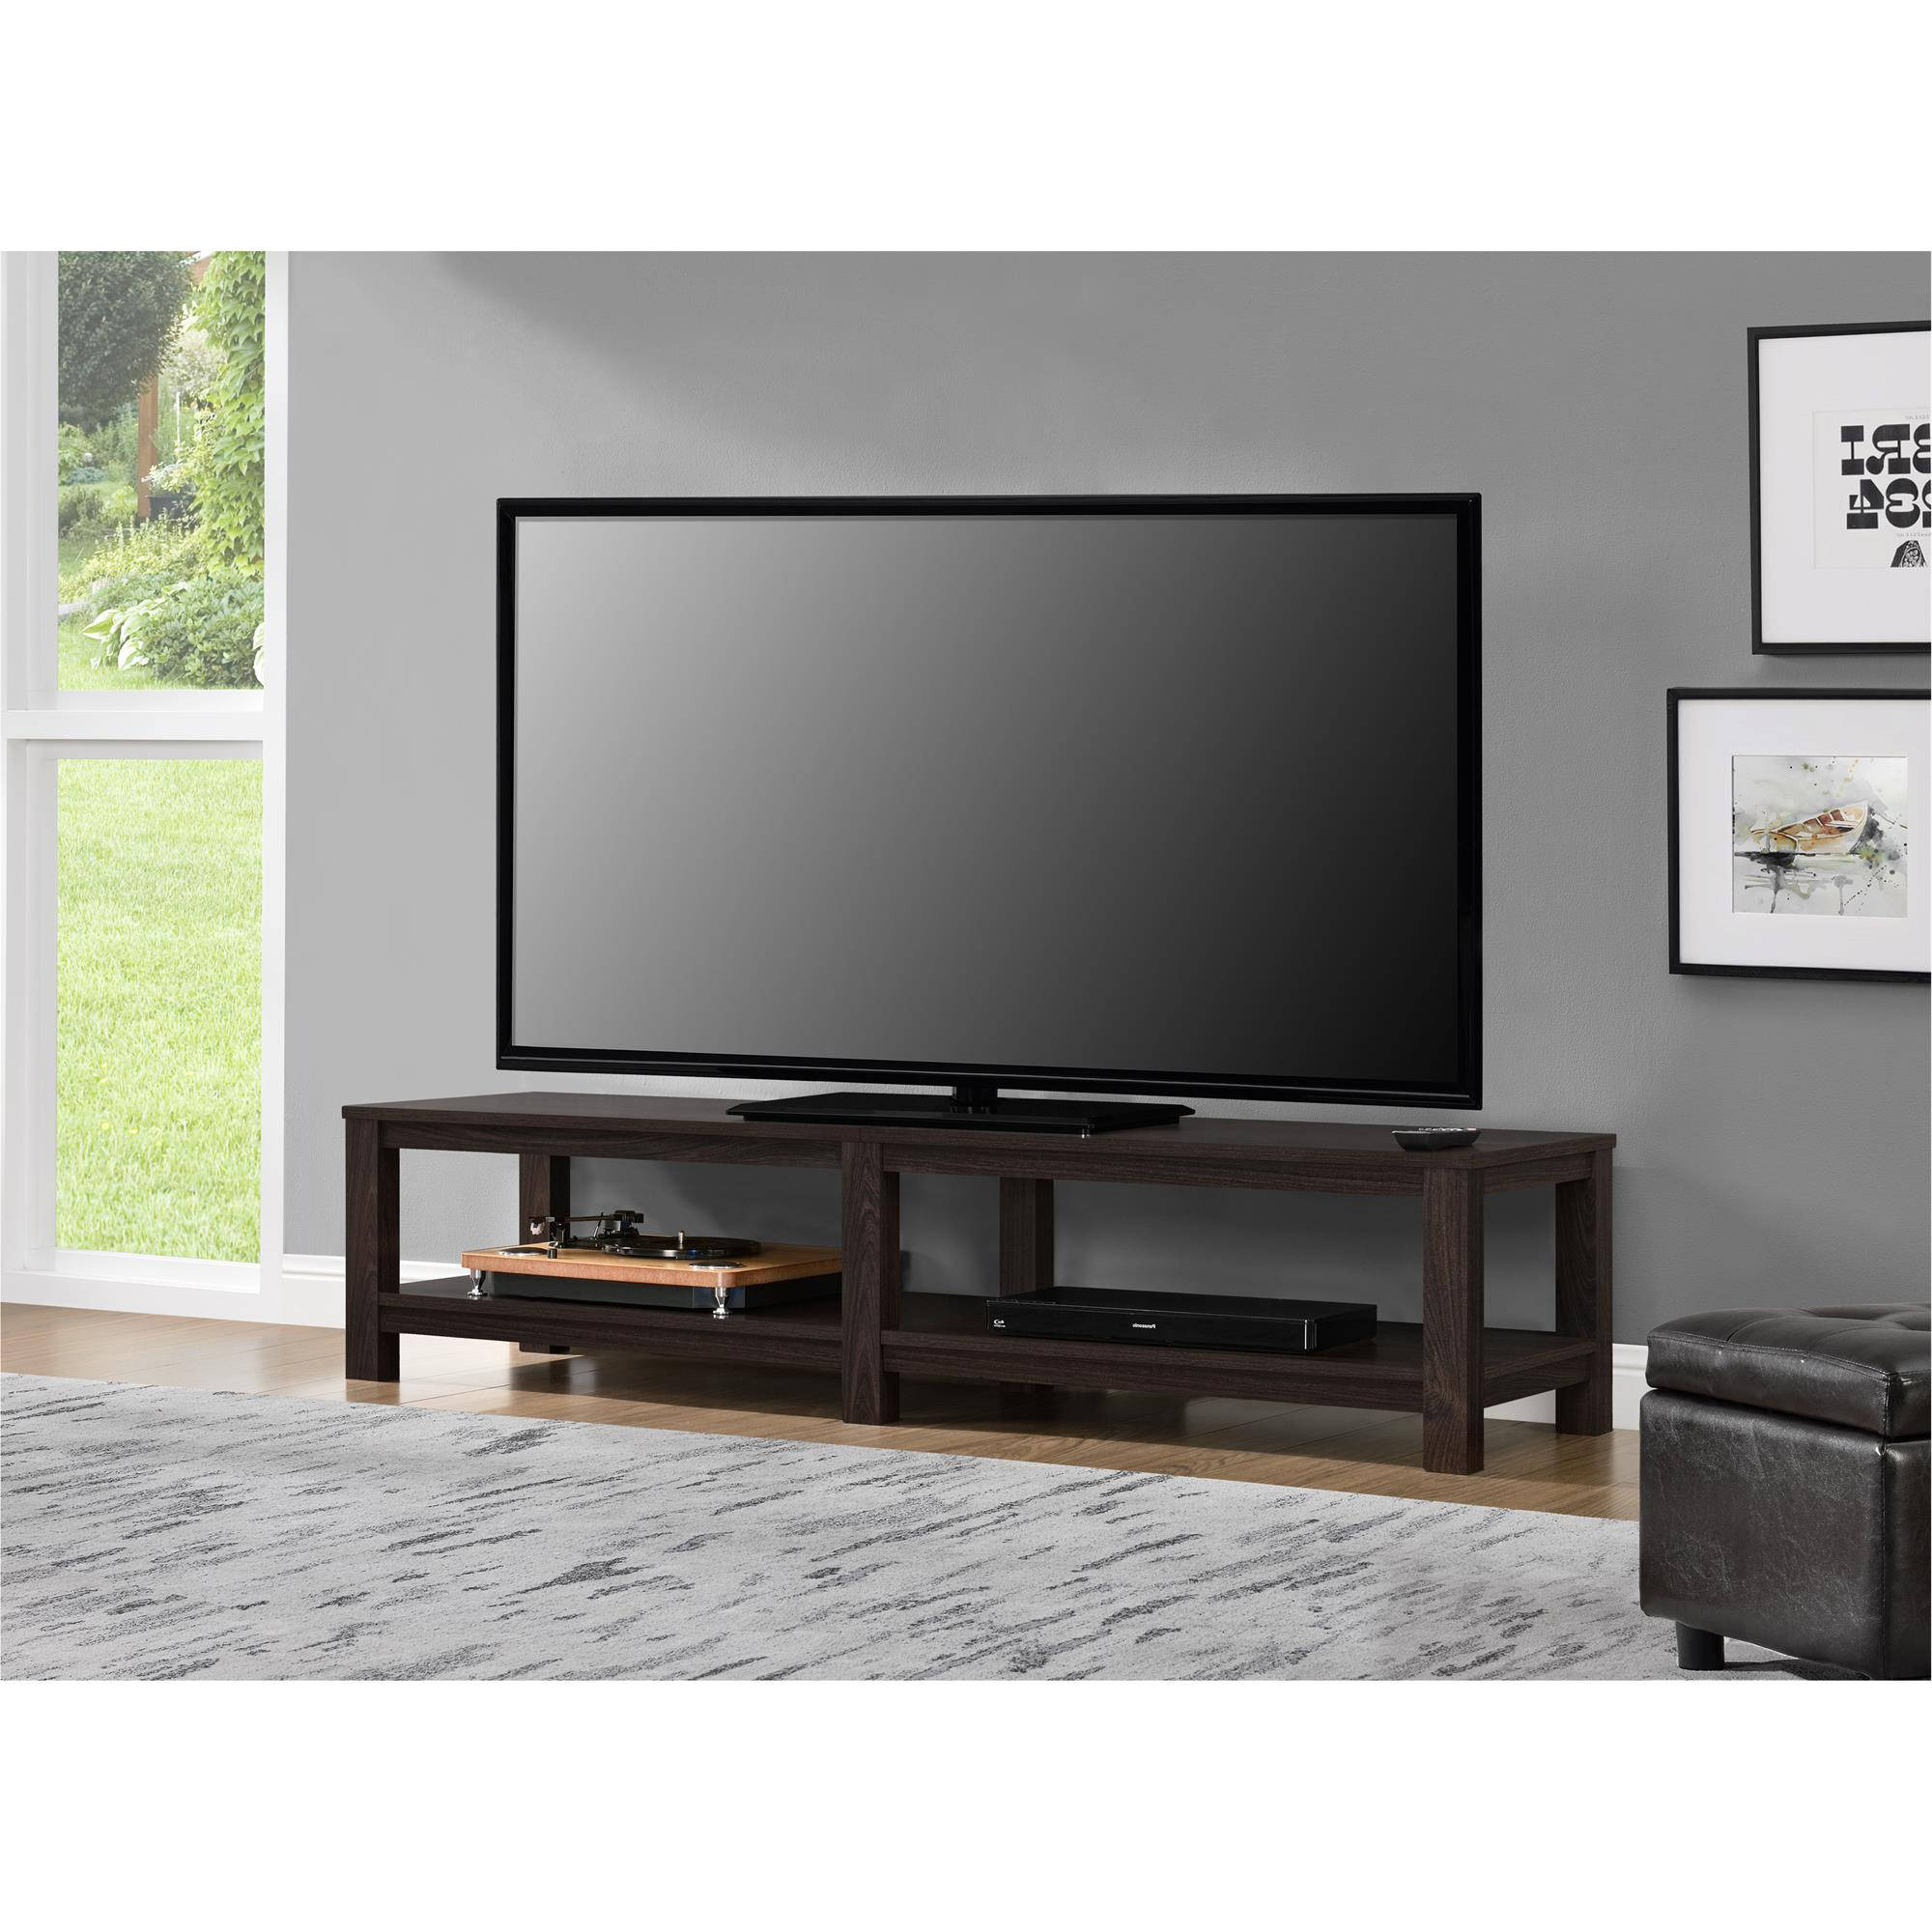 """Preferred Century Blue 60 Inch Tv Stands With Mainstays Parsons Tv Stand For Tvs Up To 65"""", Multiple Colors (View 9 of 20)"""